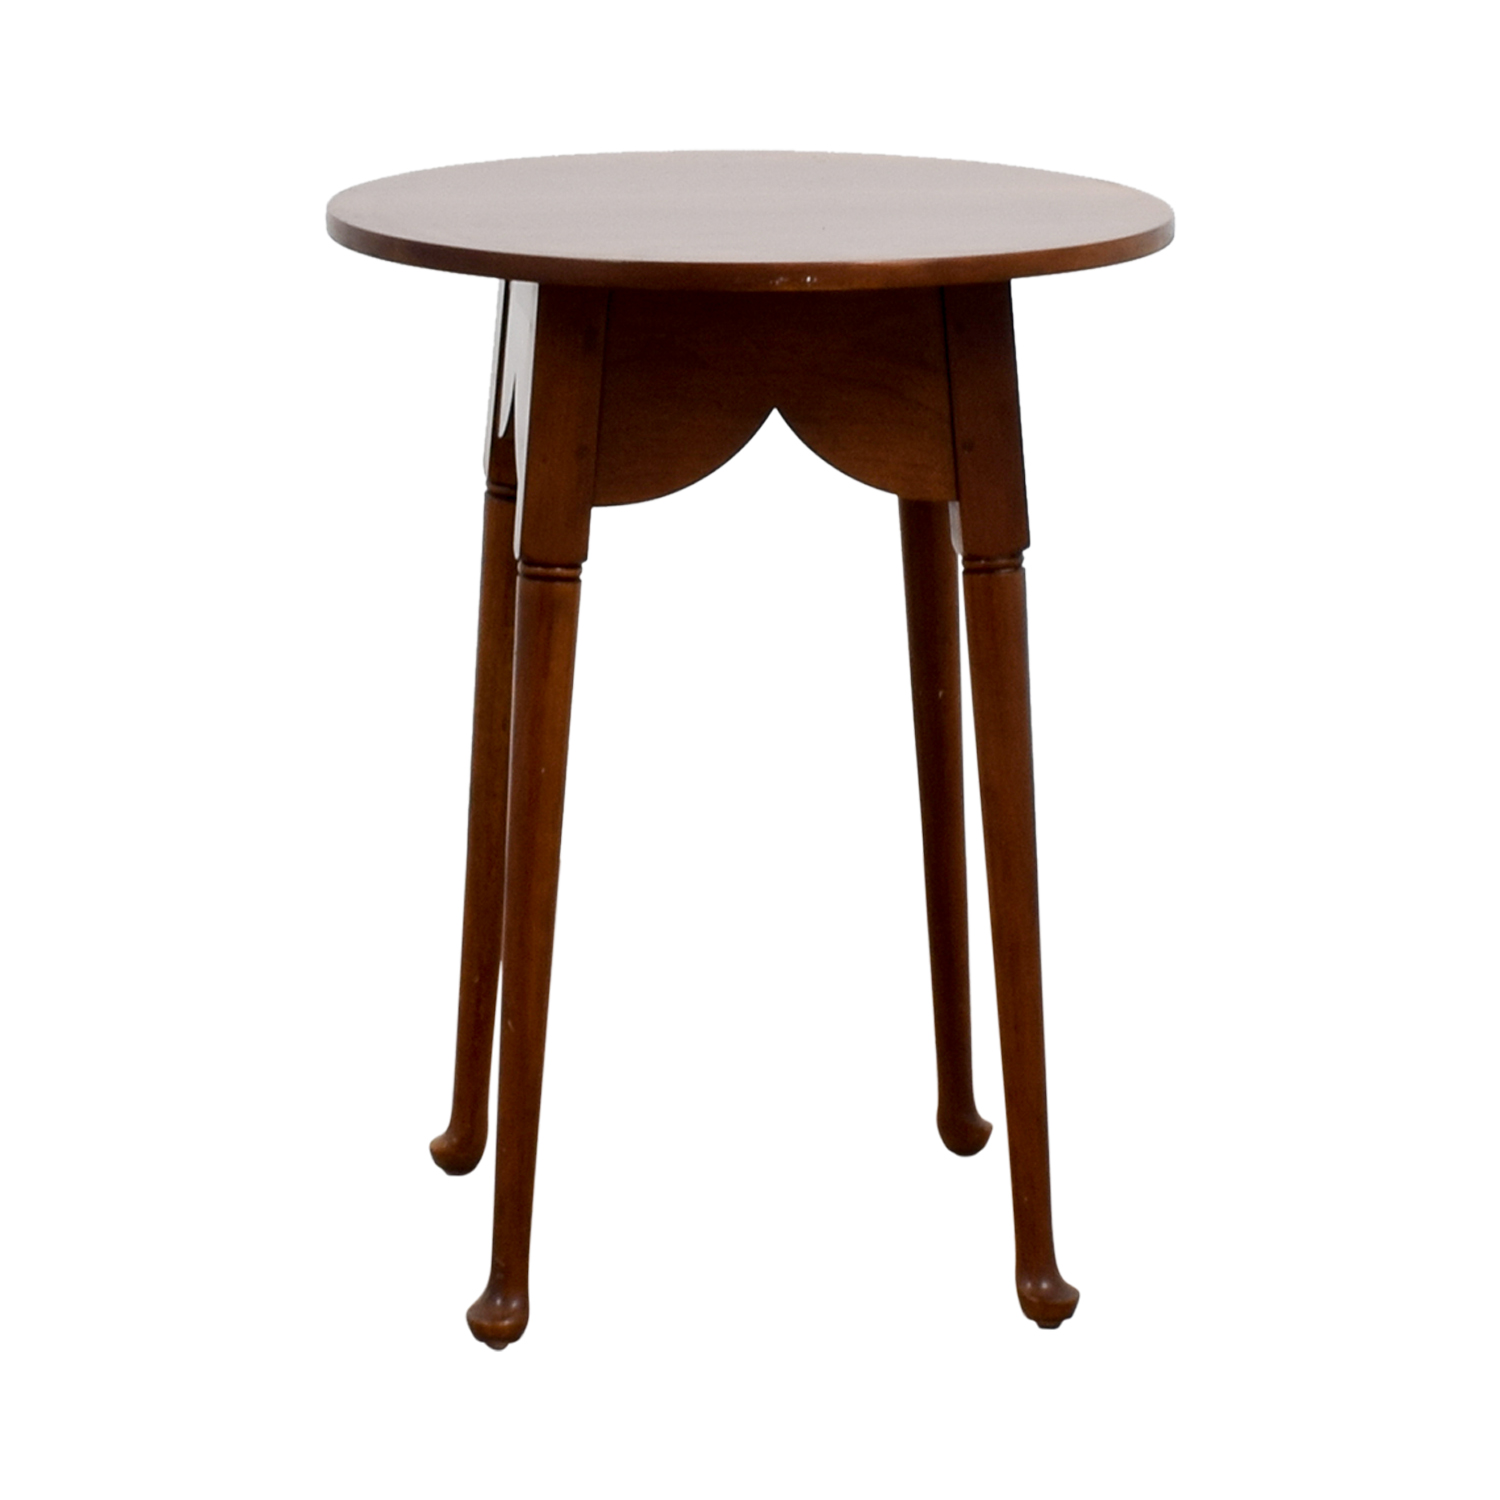 Stickley Stickley Round Dove Tailed Accent Table for sale